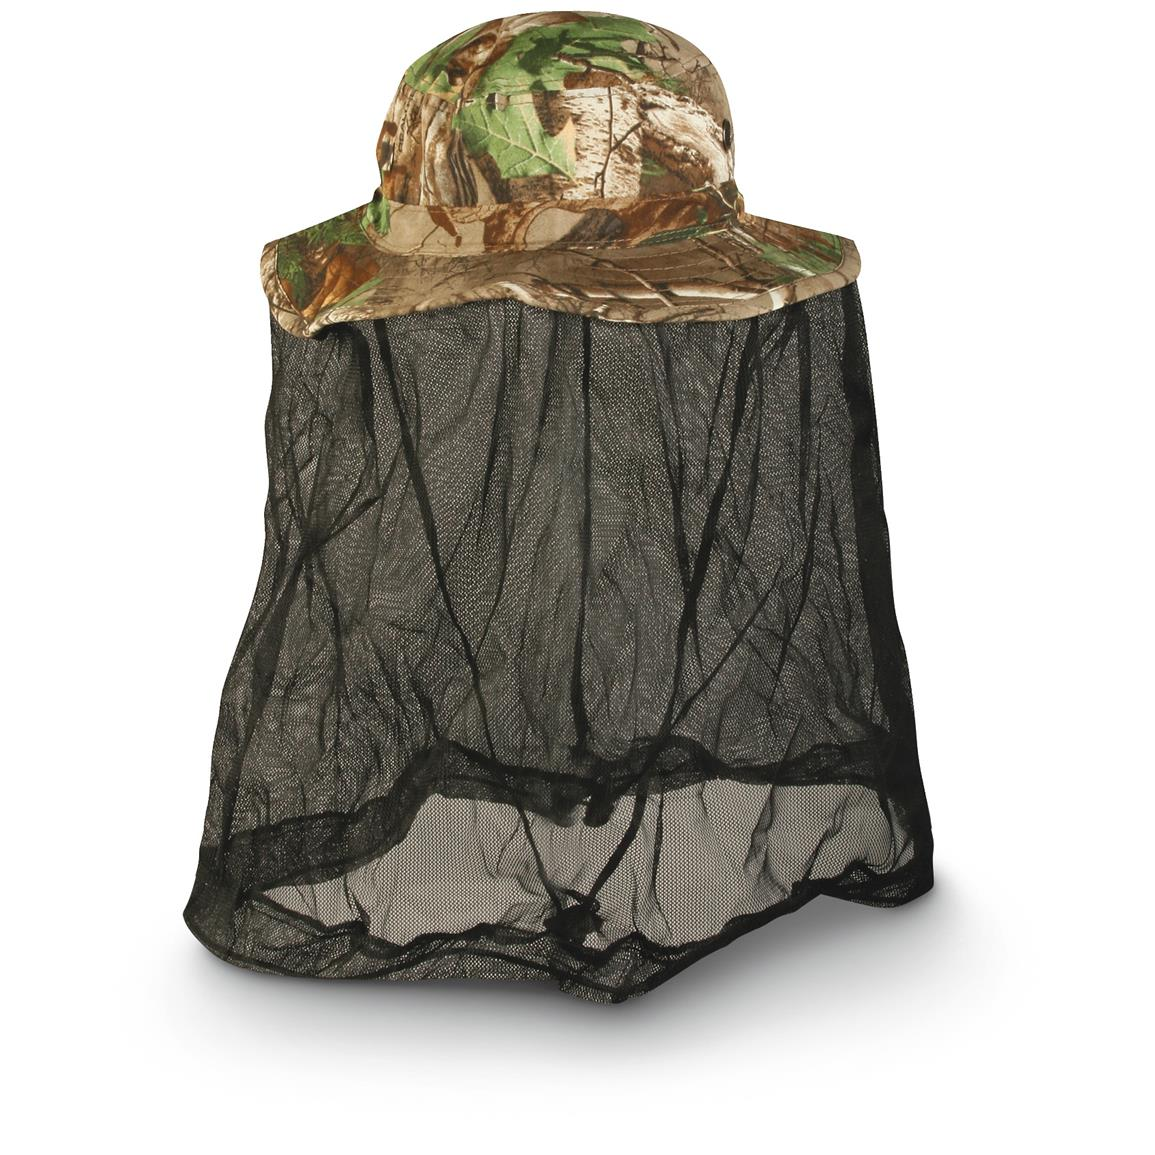 Outdoor Cap Co. Boonie Hat with Bug Net, Realtree Xtra Green